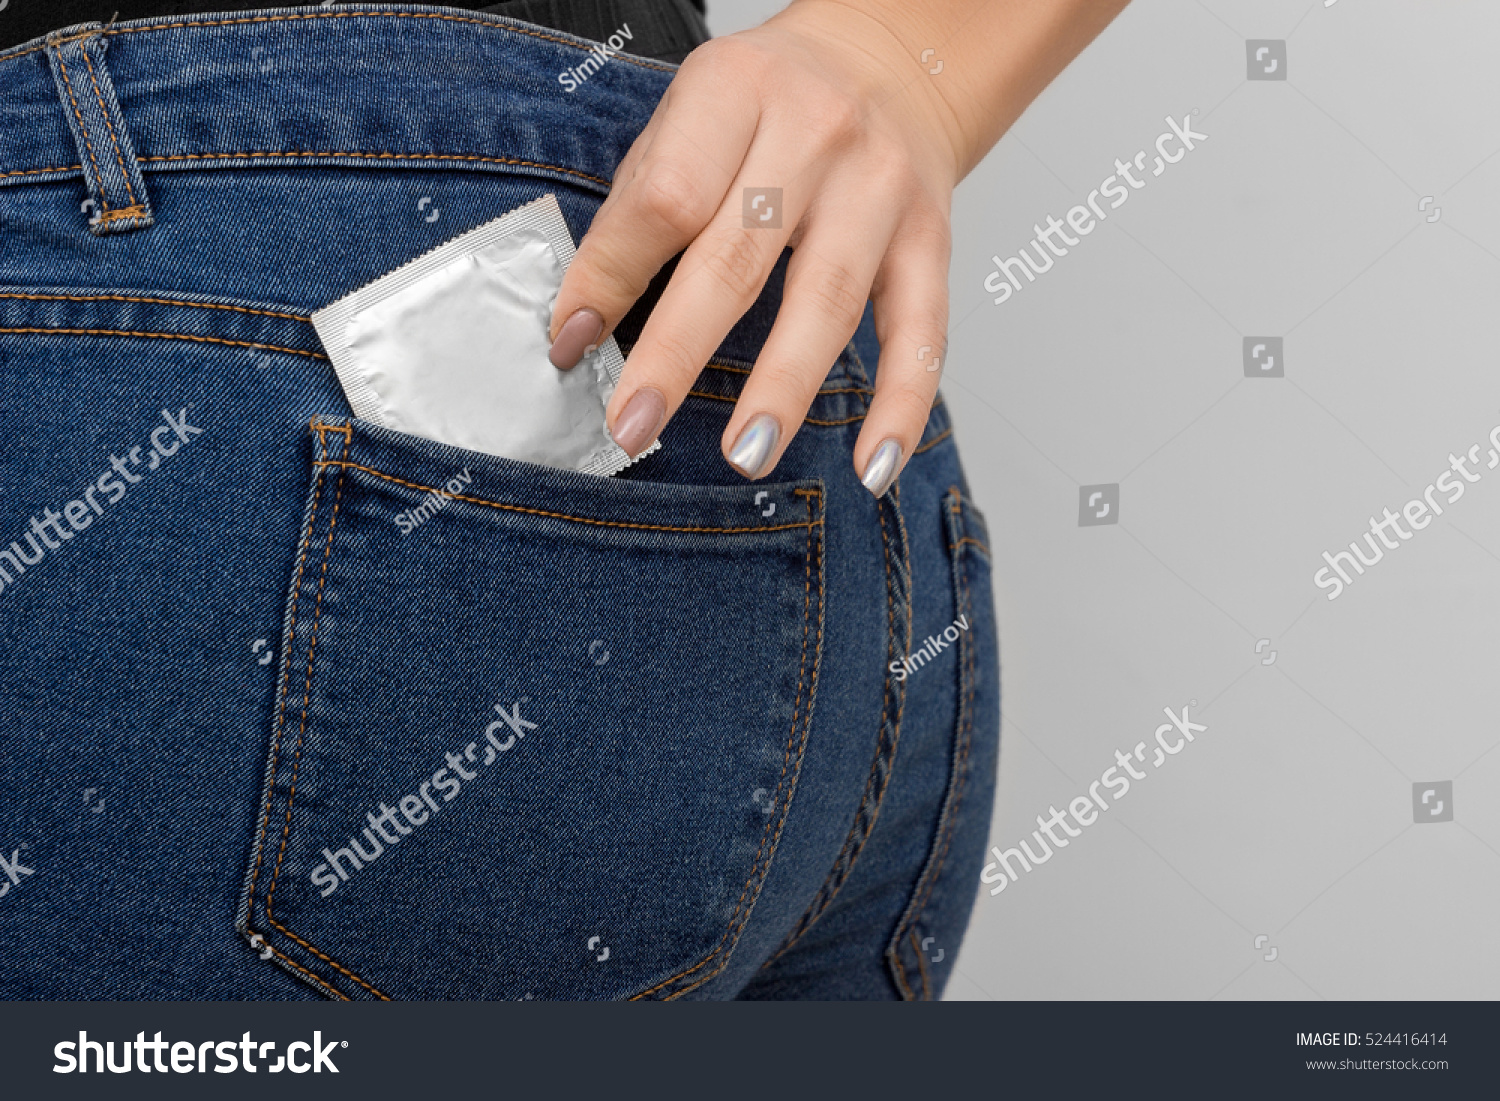 Cropped image of attractive girl in jeans putting a condom into back  pocket, against dark